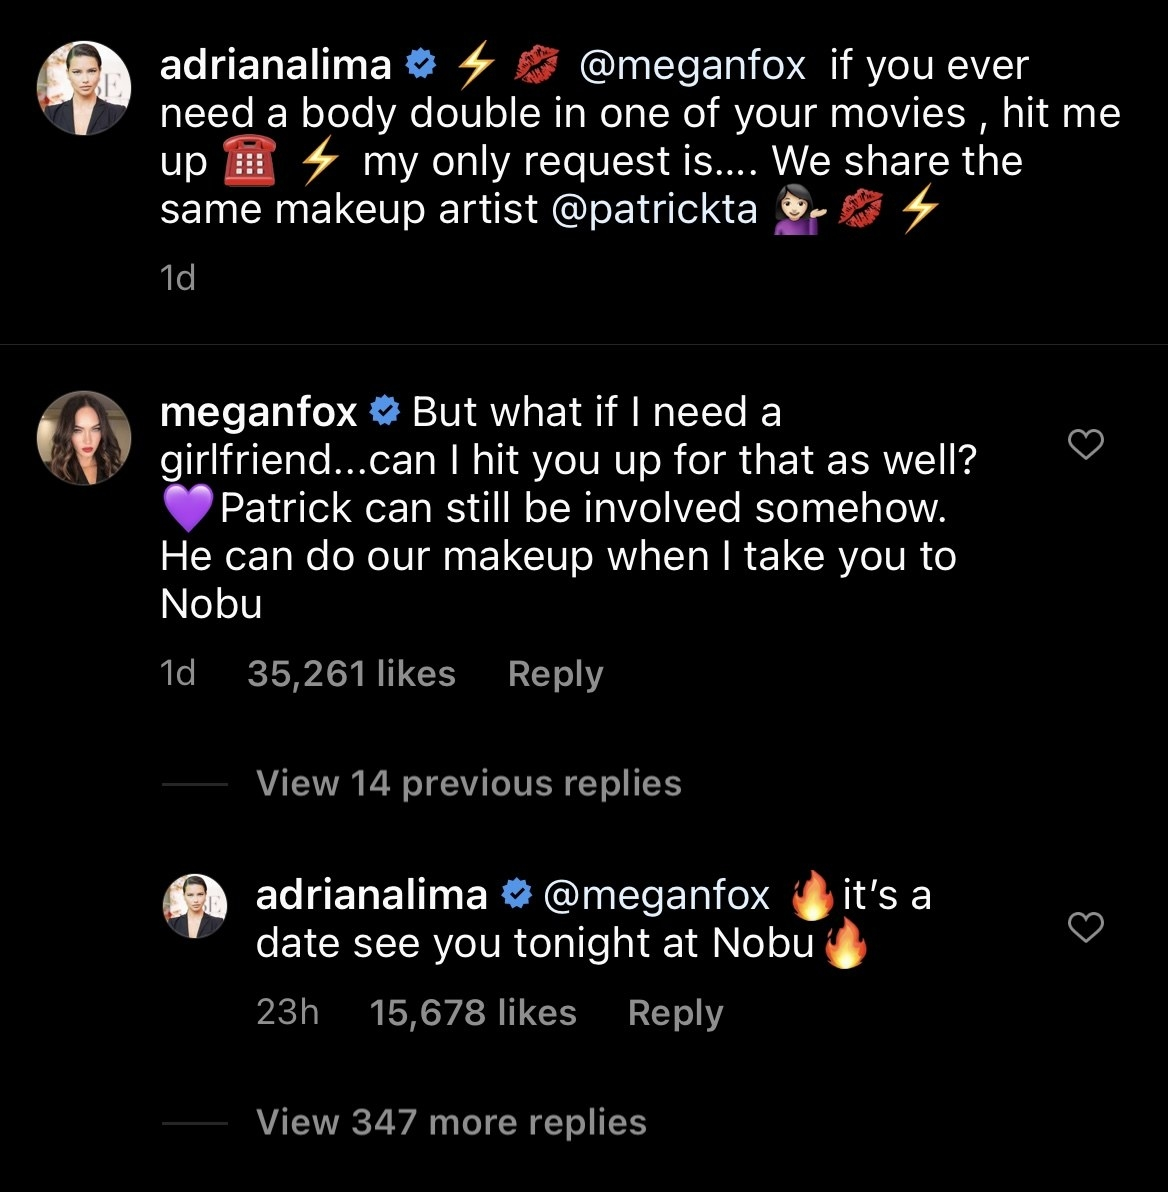 A screenshot that shows Megan Fox and Adriana Lima's recent Instagram exchange